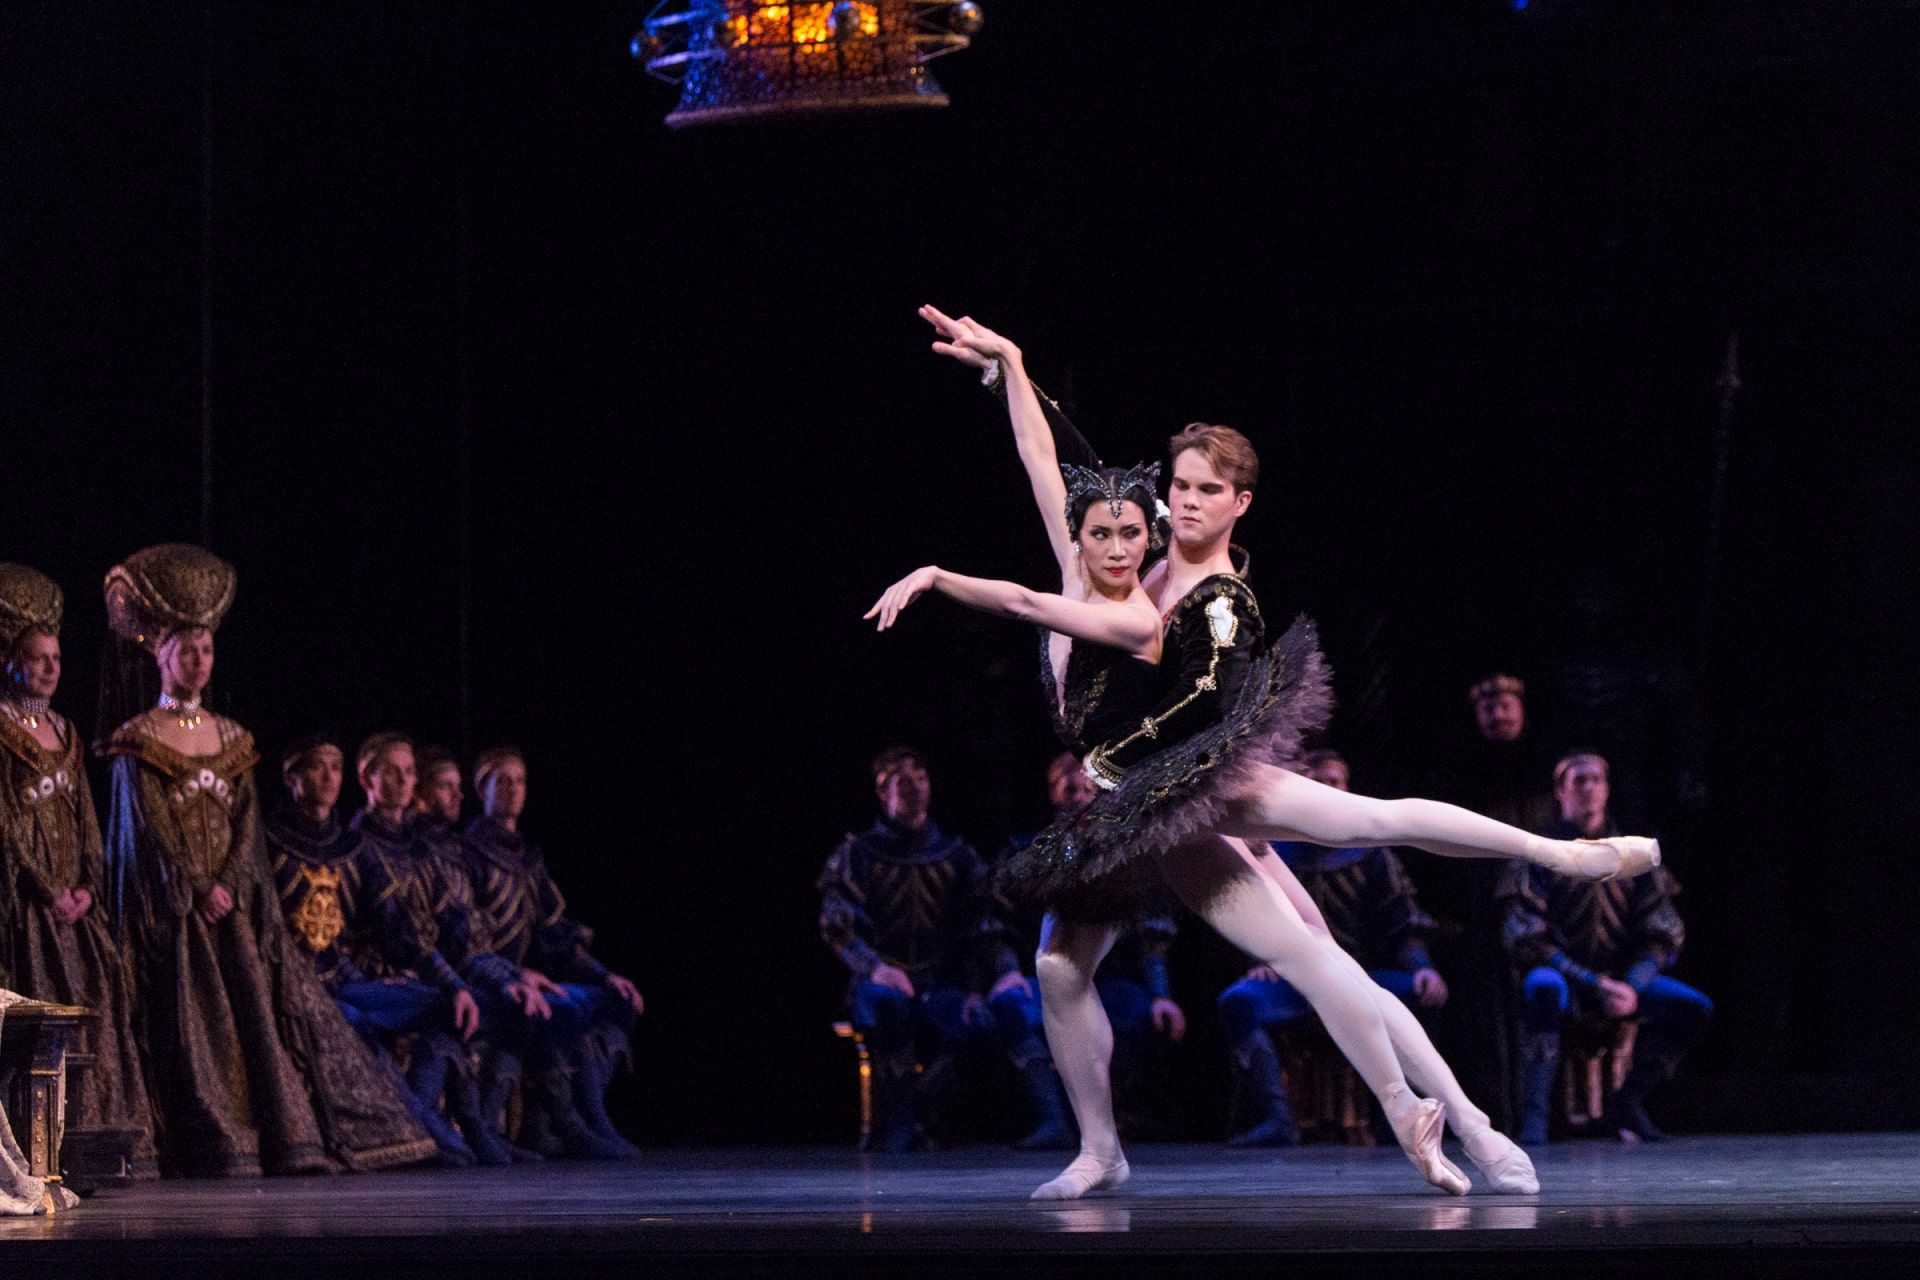 Ballerina in black tutu dances with partner, watched by blue-lit seated courtiers in regal attire.